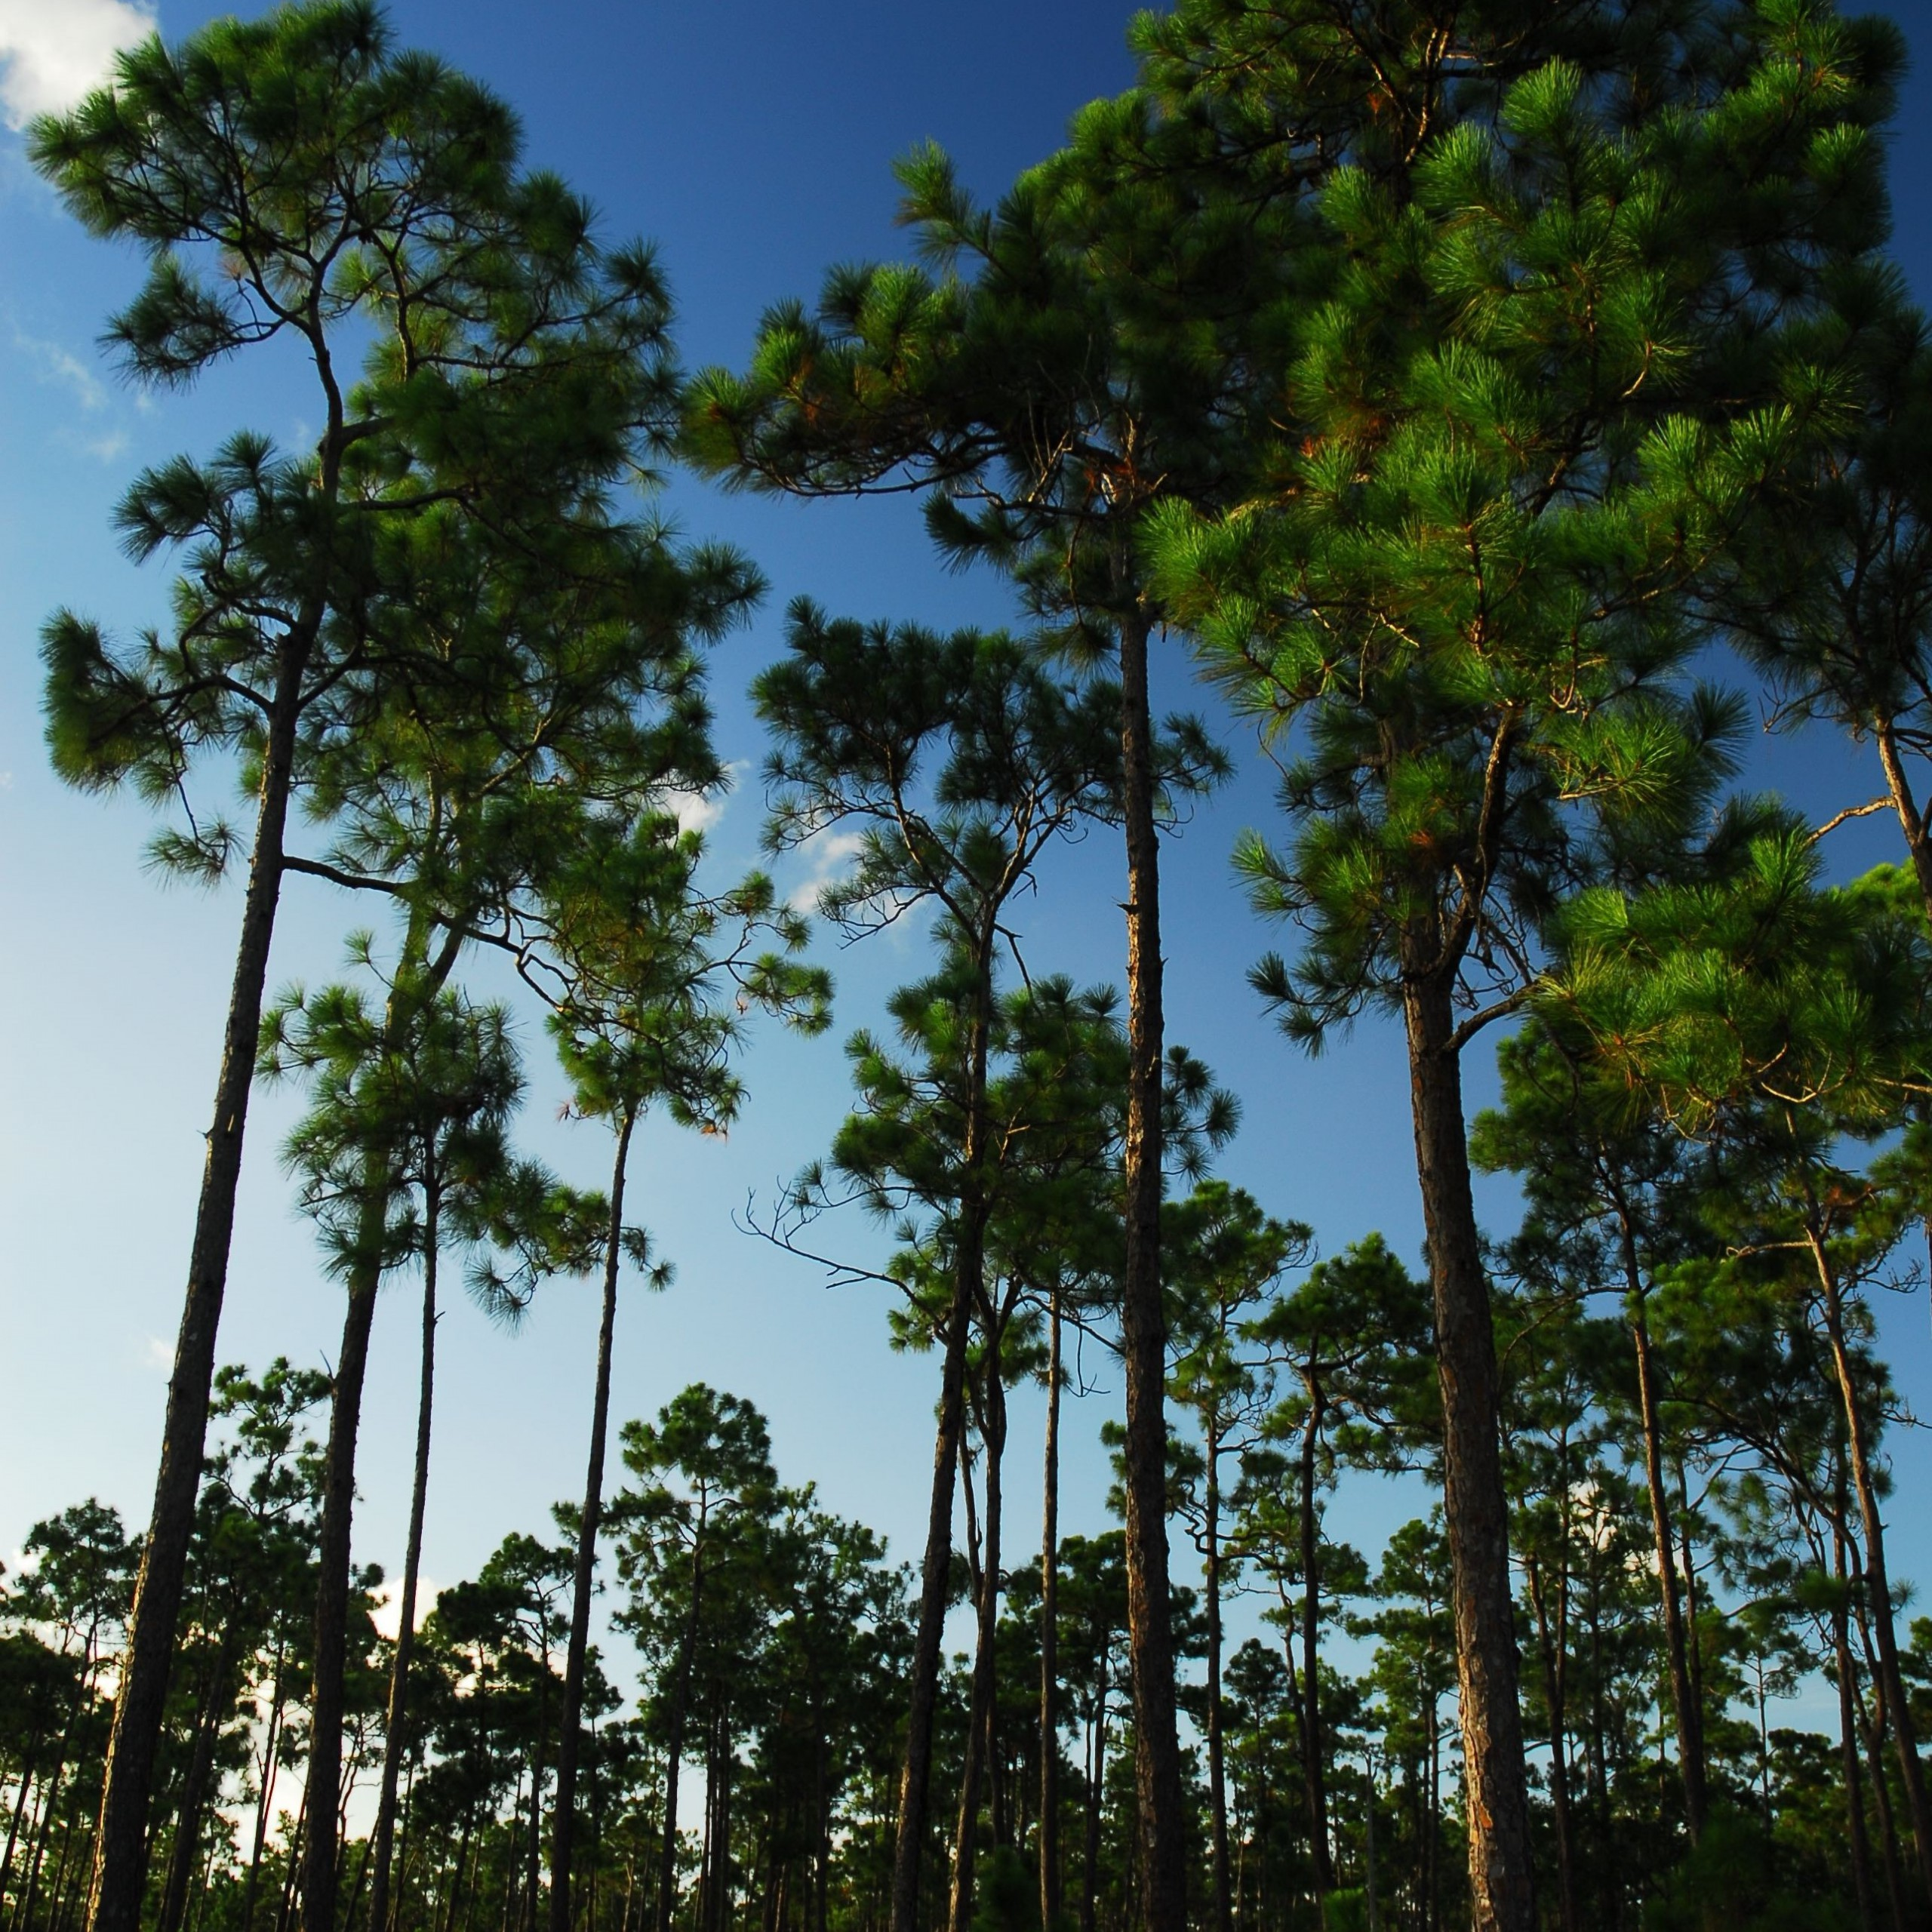 view of the endangered Pine rocklands, a globally imperiled habitat